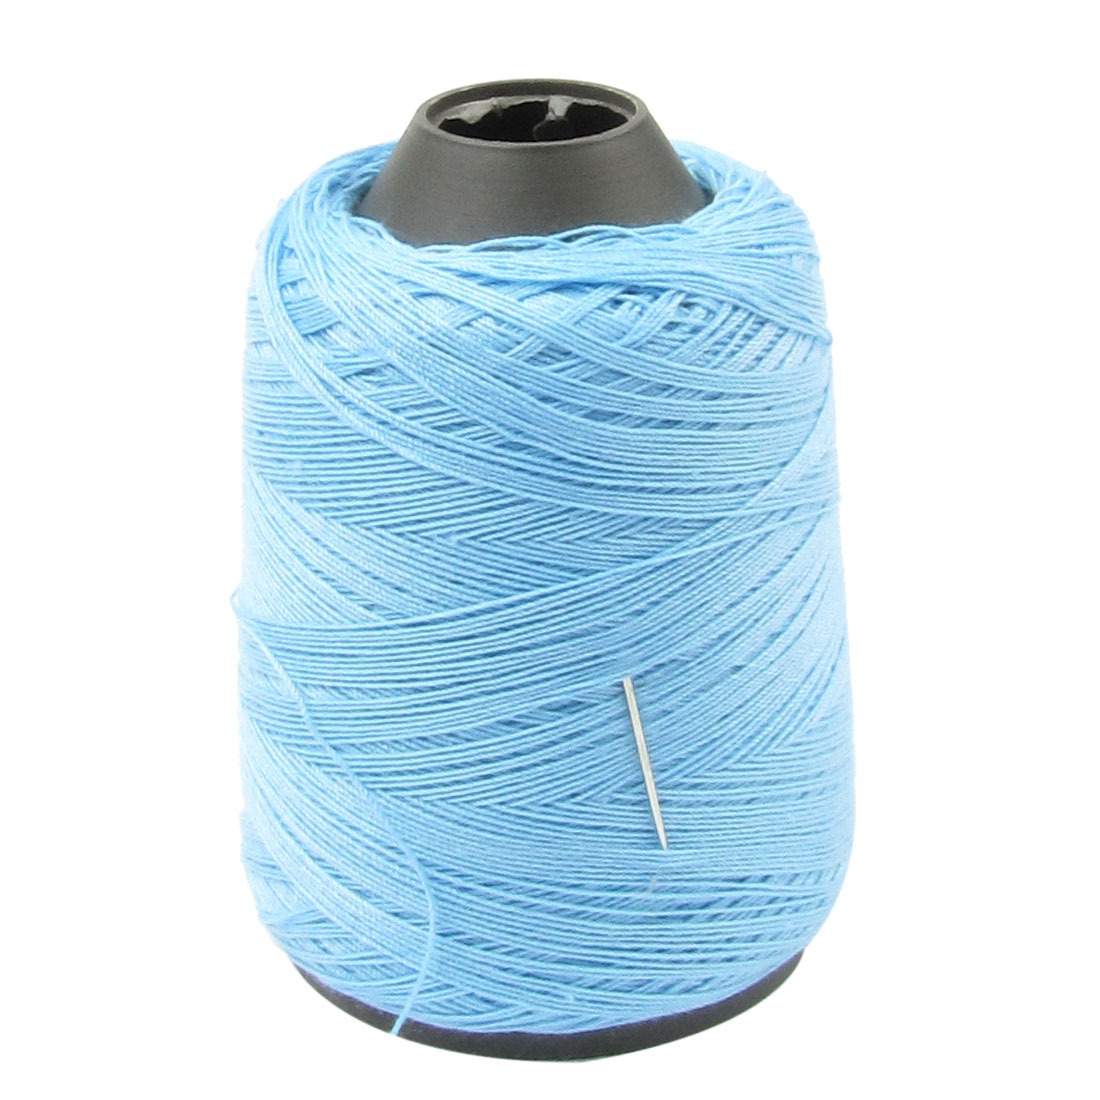 Tapered Plastic Spool Light Blue Embroidery Tailor Sewing Thread String w Needle